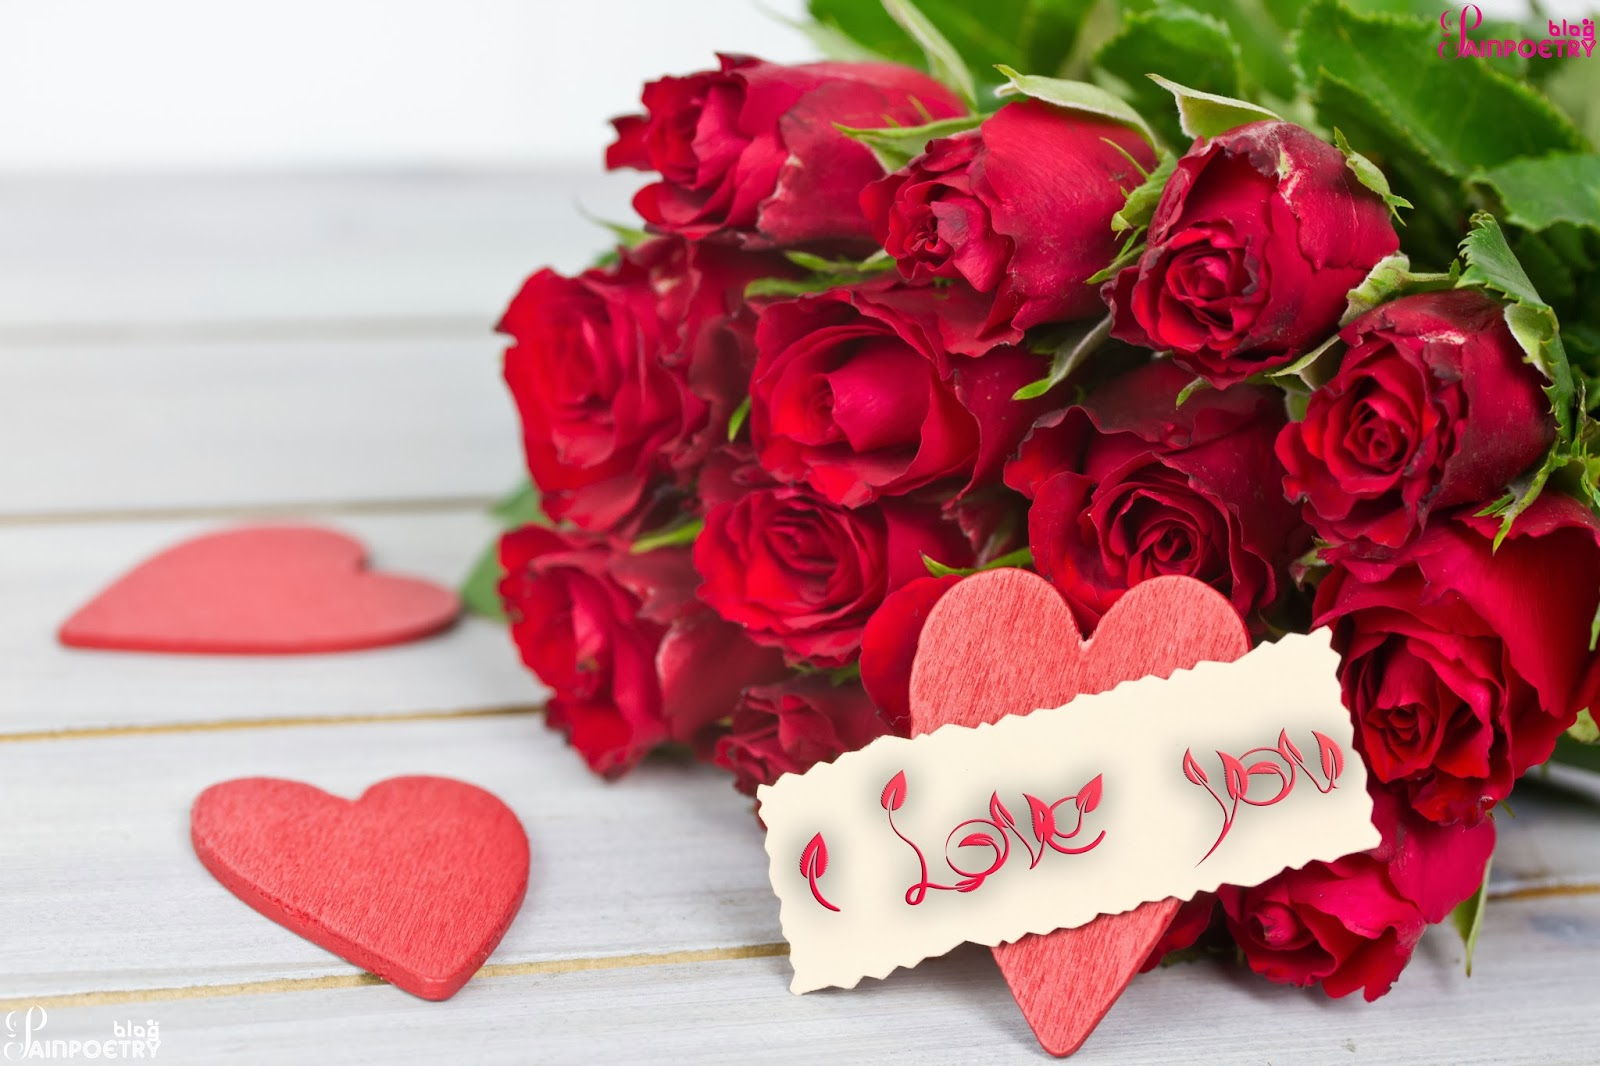 I-Love-You-Wallpaper-With-Three-Hearts-And-Bundle-Of-Flowers-Image-HD-Wide